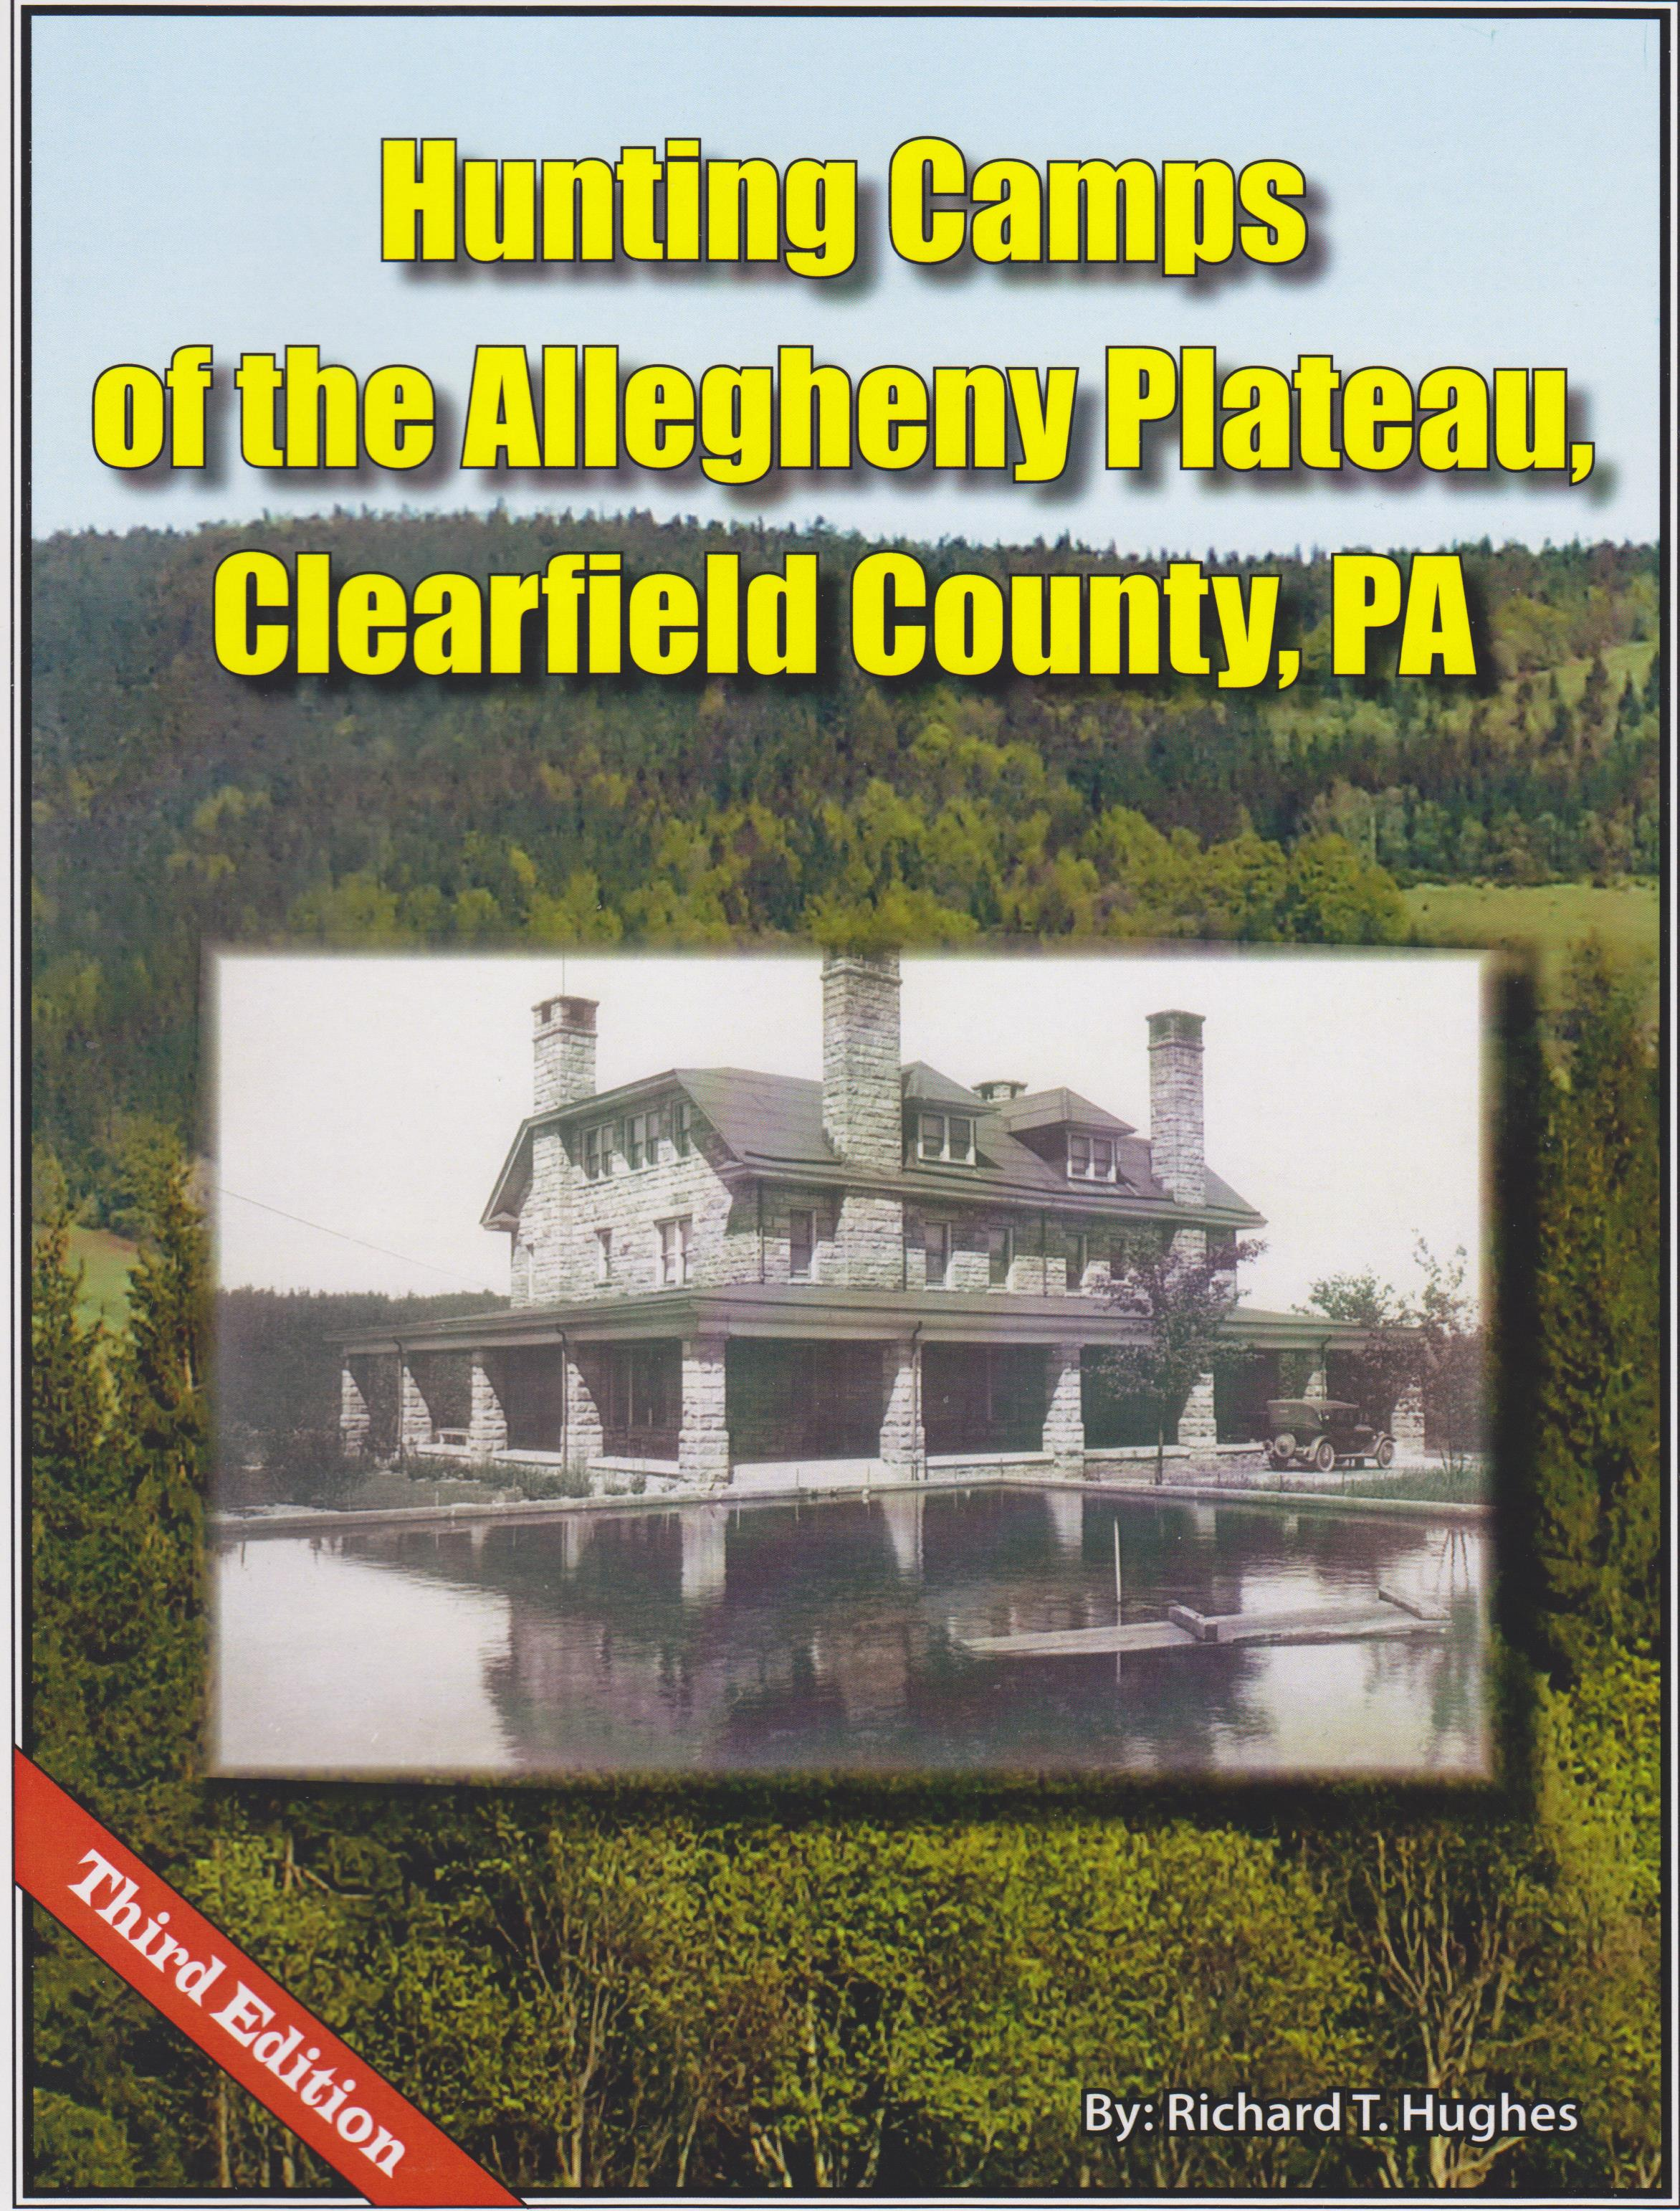 Hunting Camps of the Allegheny Plateau, Clearfield County, PA